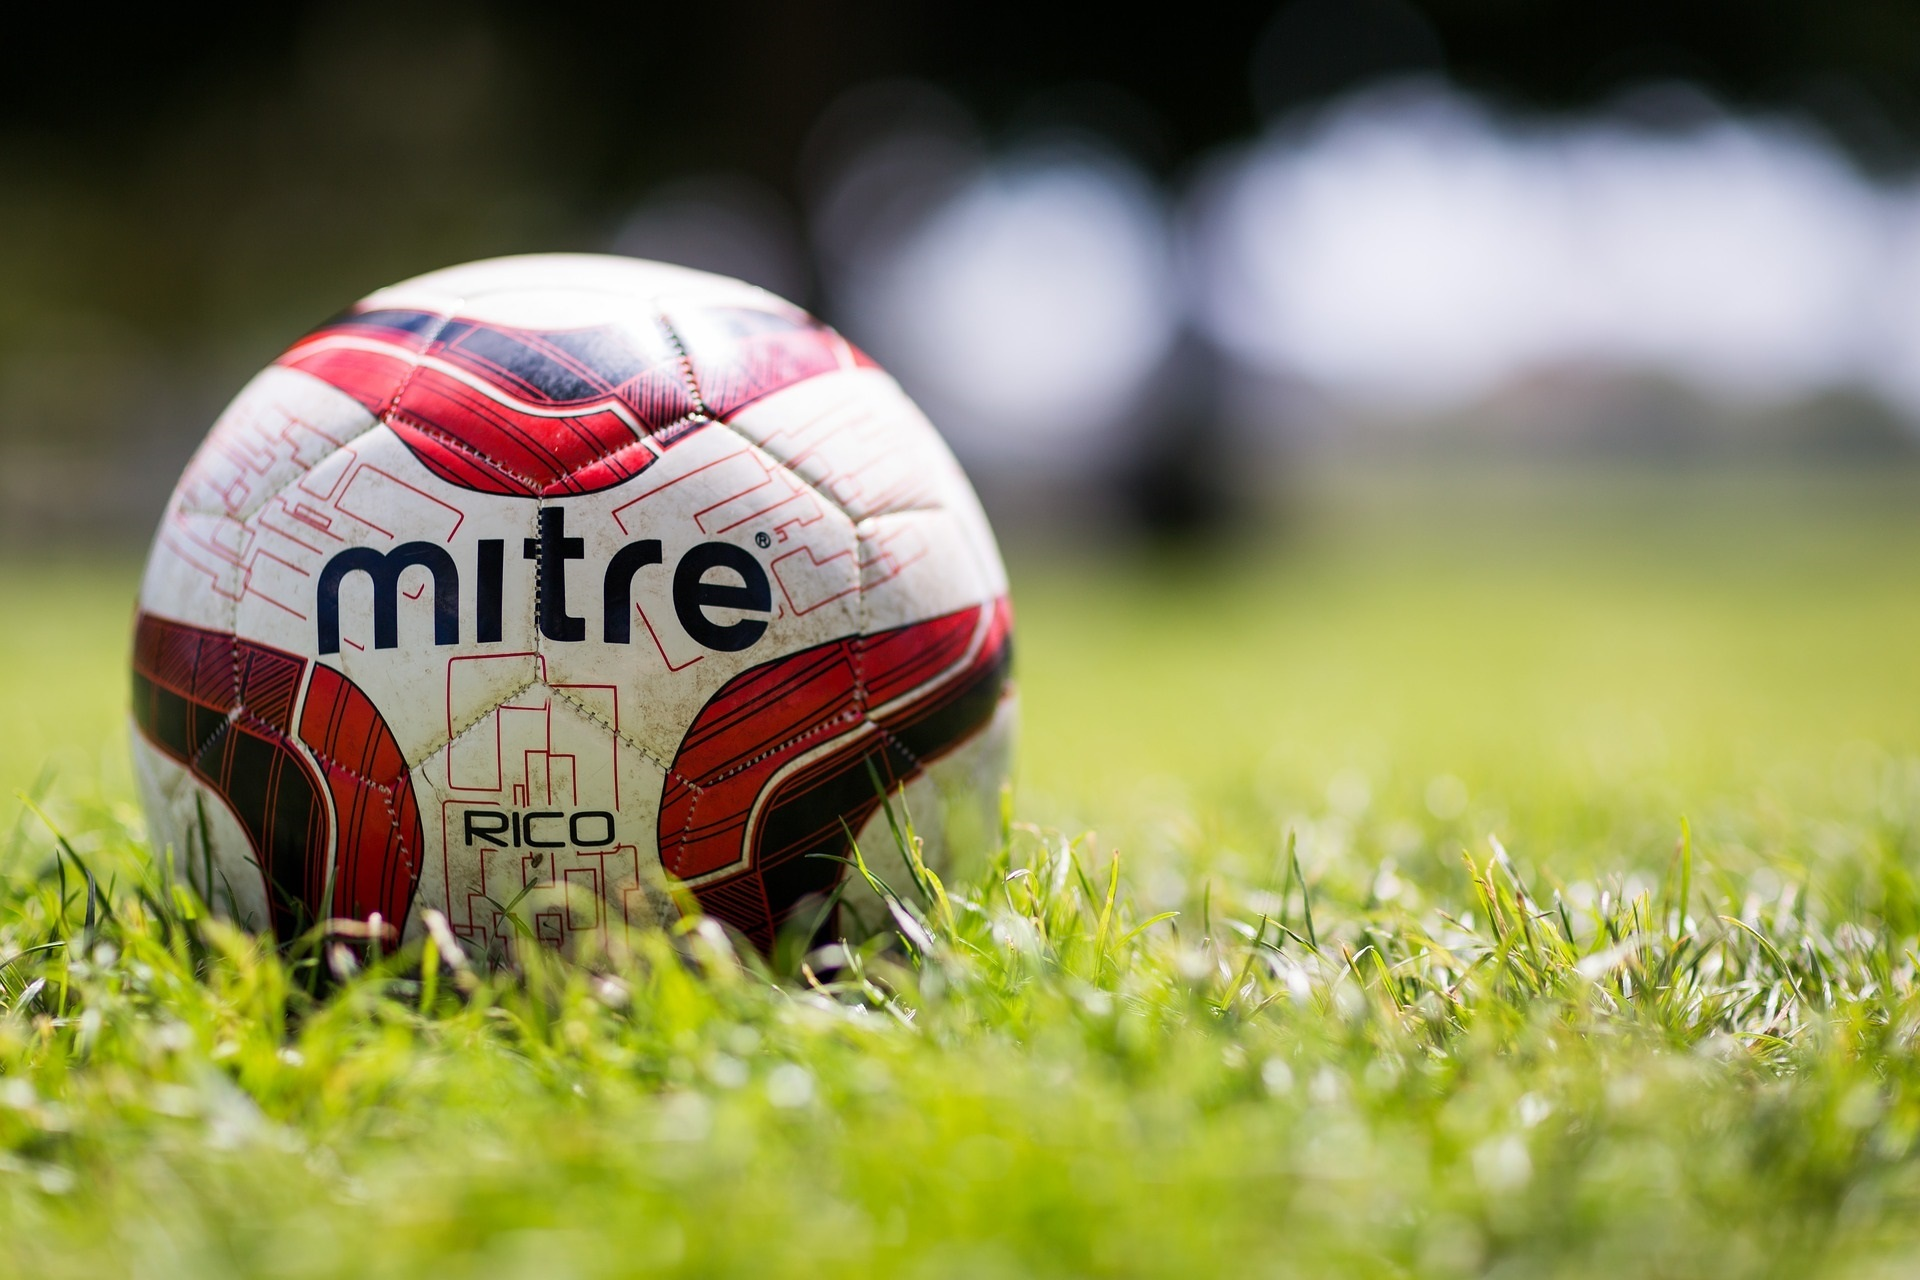 Middlewich Town co-manager Ross Speight has said this weekend's Mid-Cheshire District FA Saturday Challenge Cup final against Lostock Gralam is an opportunity for the Witches to start a winning cycle